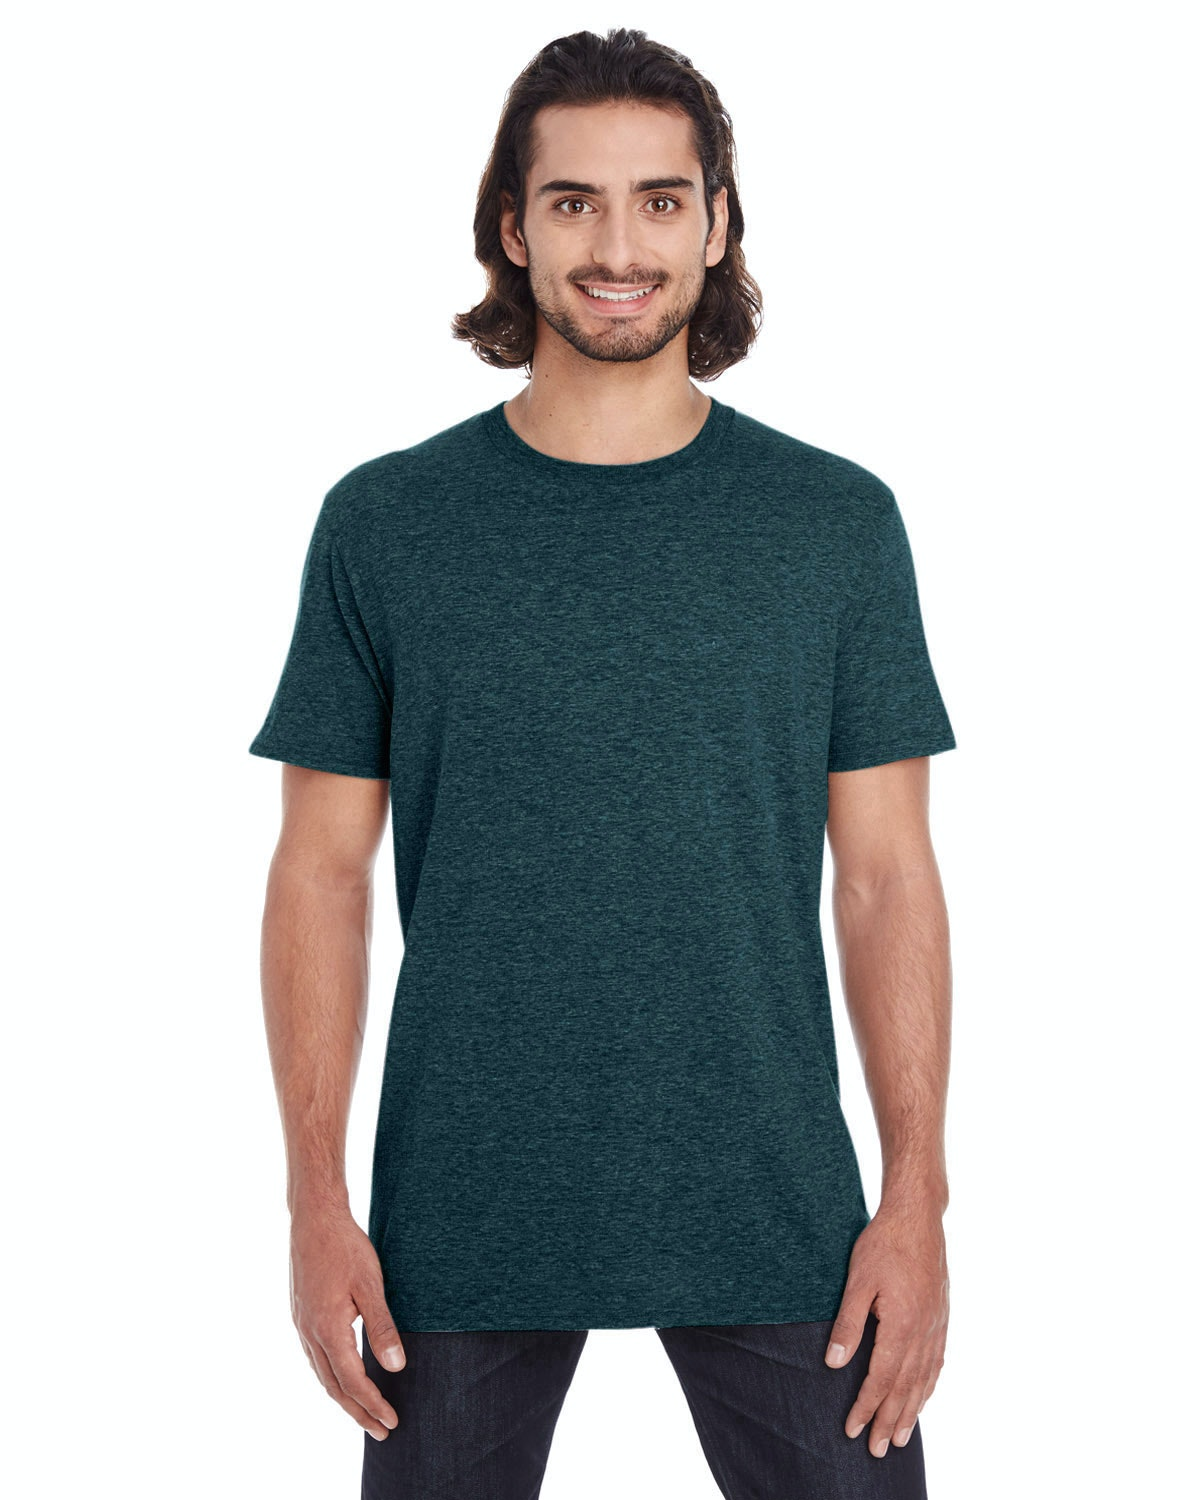 Anvil 980 Hth Dark Green